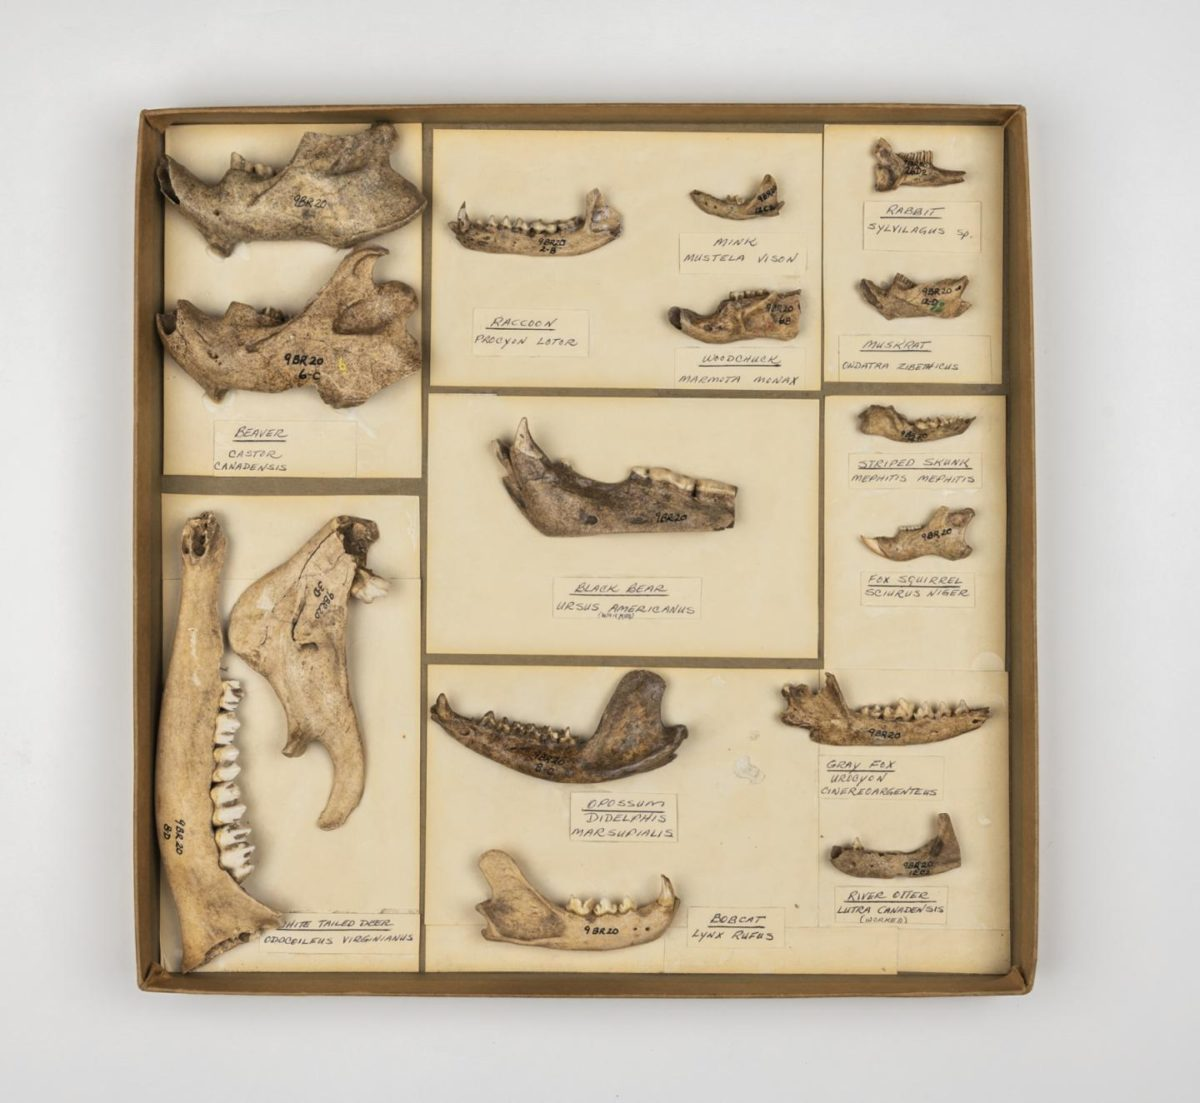 These jawbones come from animals collected at archaeological sites in the southeastern US. The bottom of the black bear jaw in the center box has been cut, possibly for use in a mask. Credit: Florida Museum photo by Kristen Grace